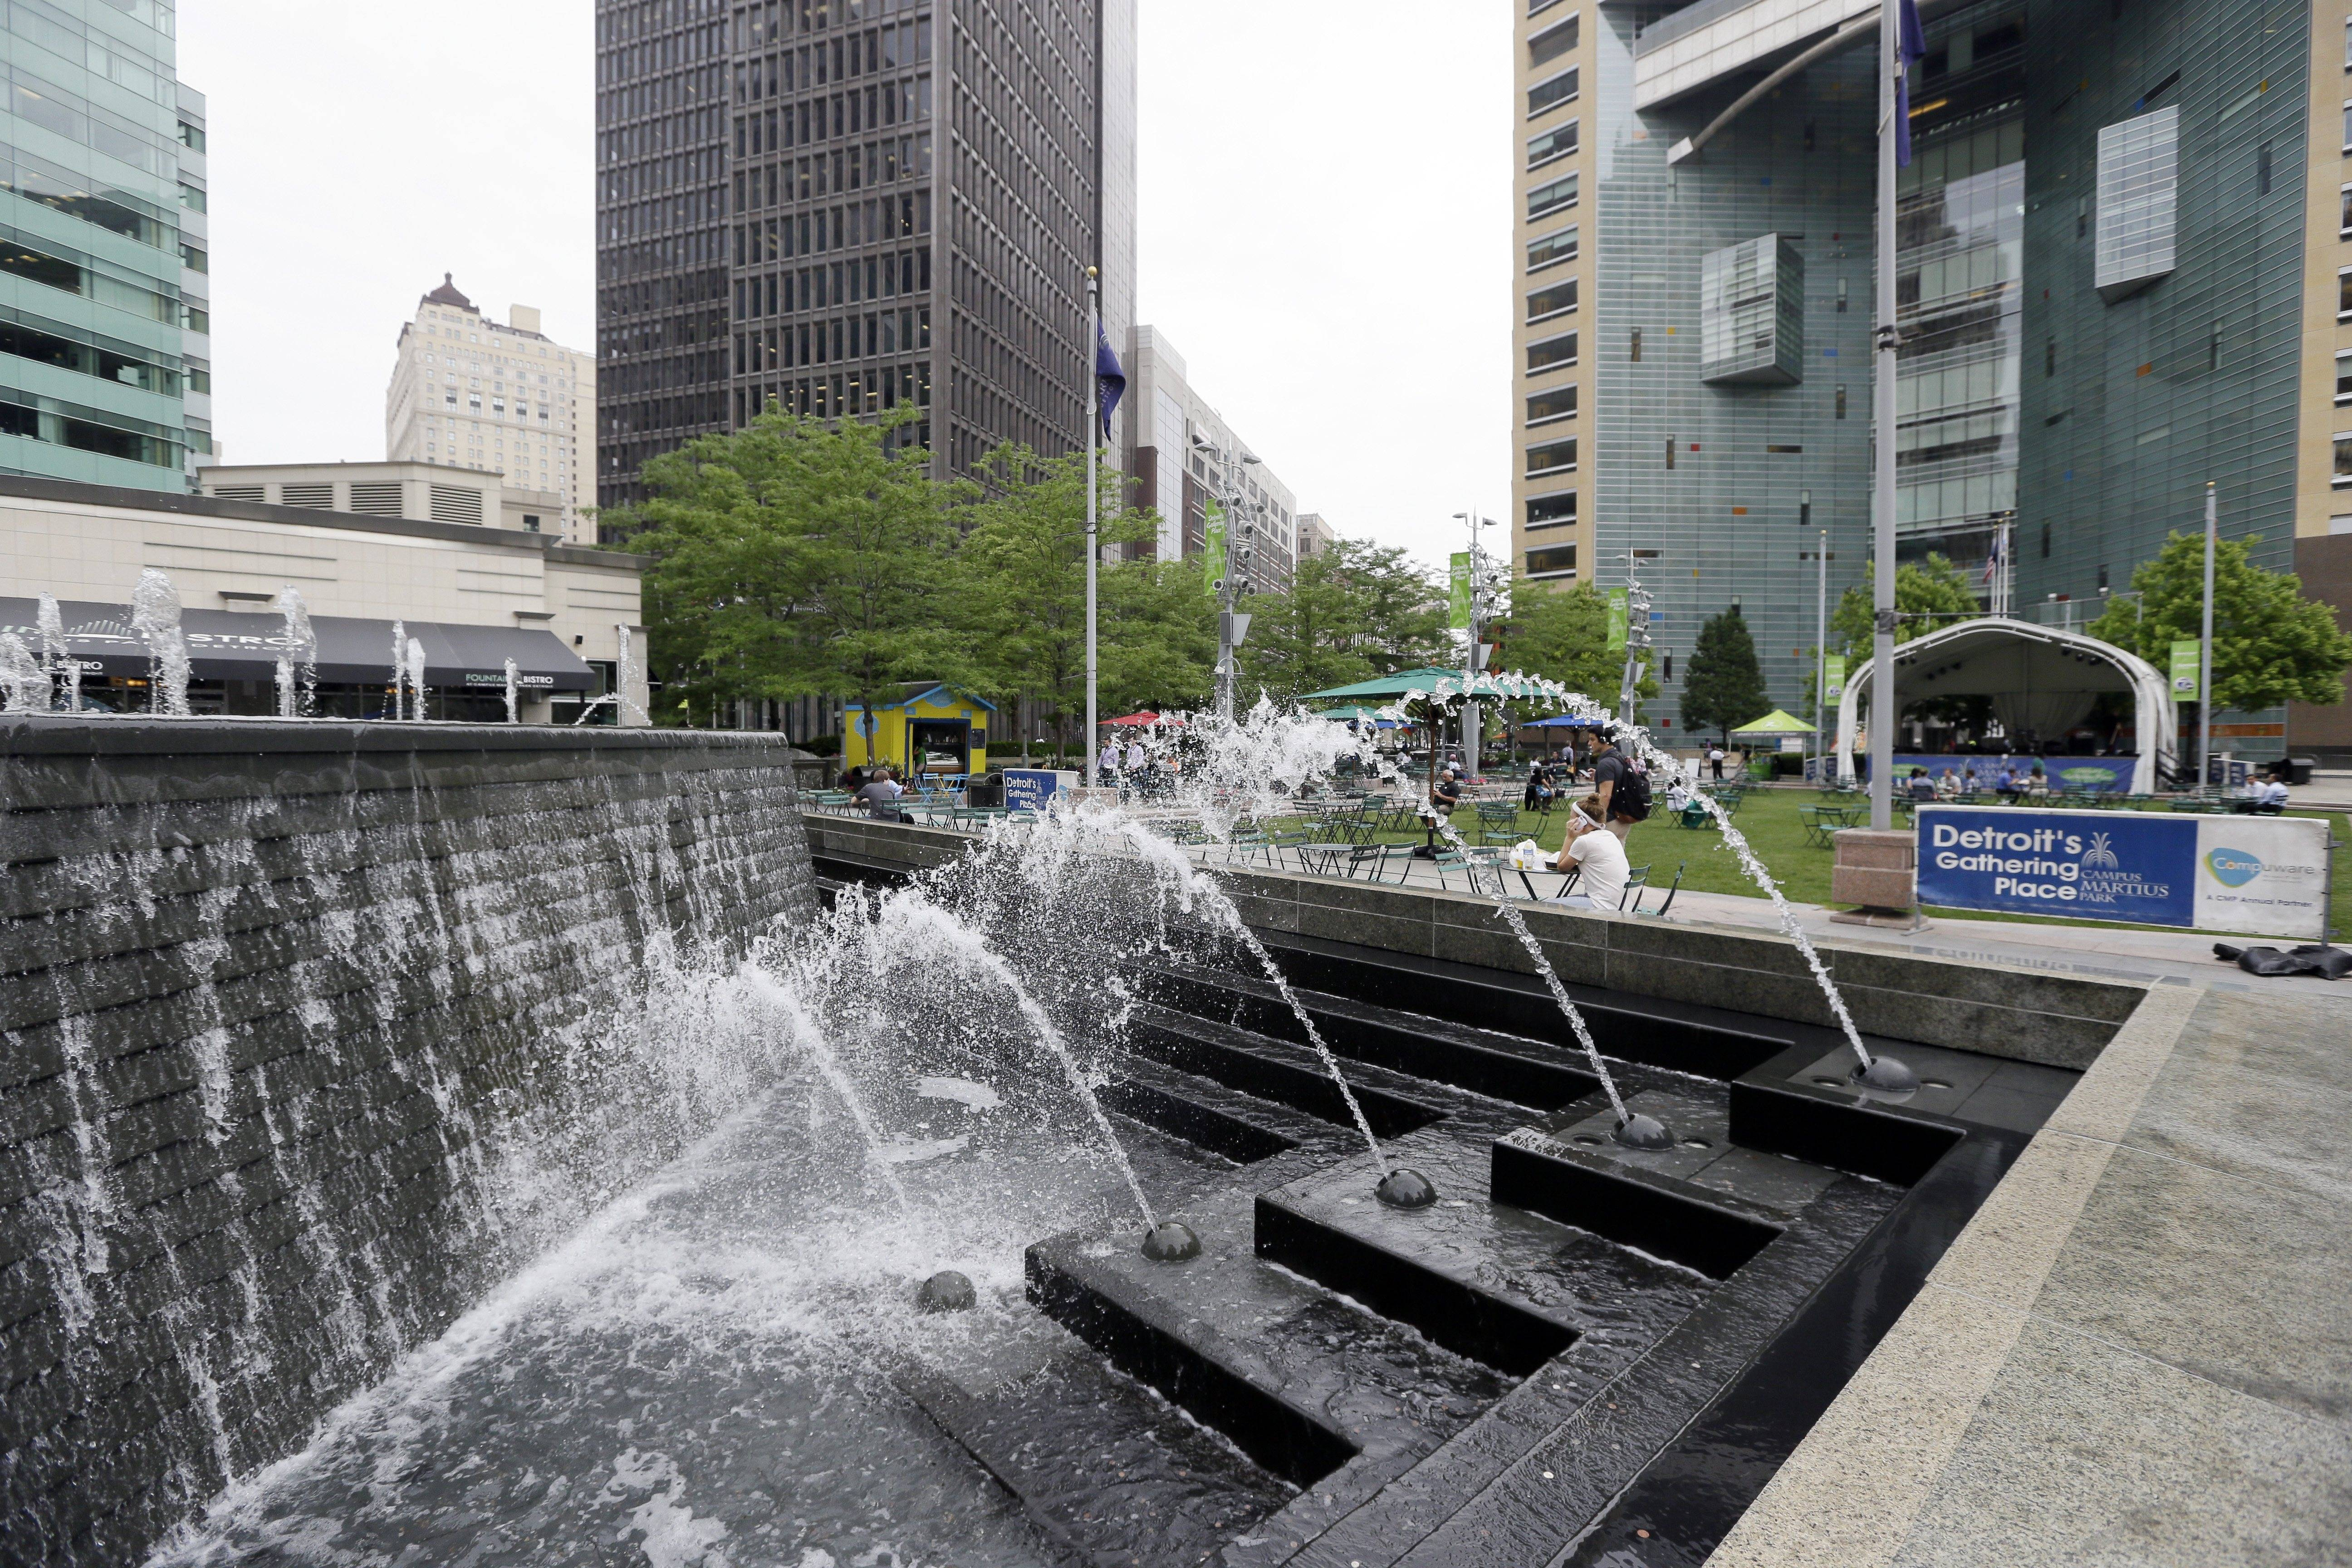 Campus Martius is a 1.6-acre park where the historic Woodward and Michigan avenues converge. It opened in 2004 after several years of plans and more than $20 million in donations.